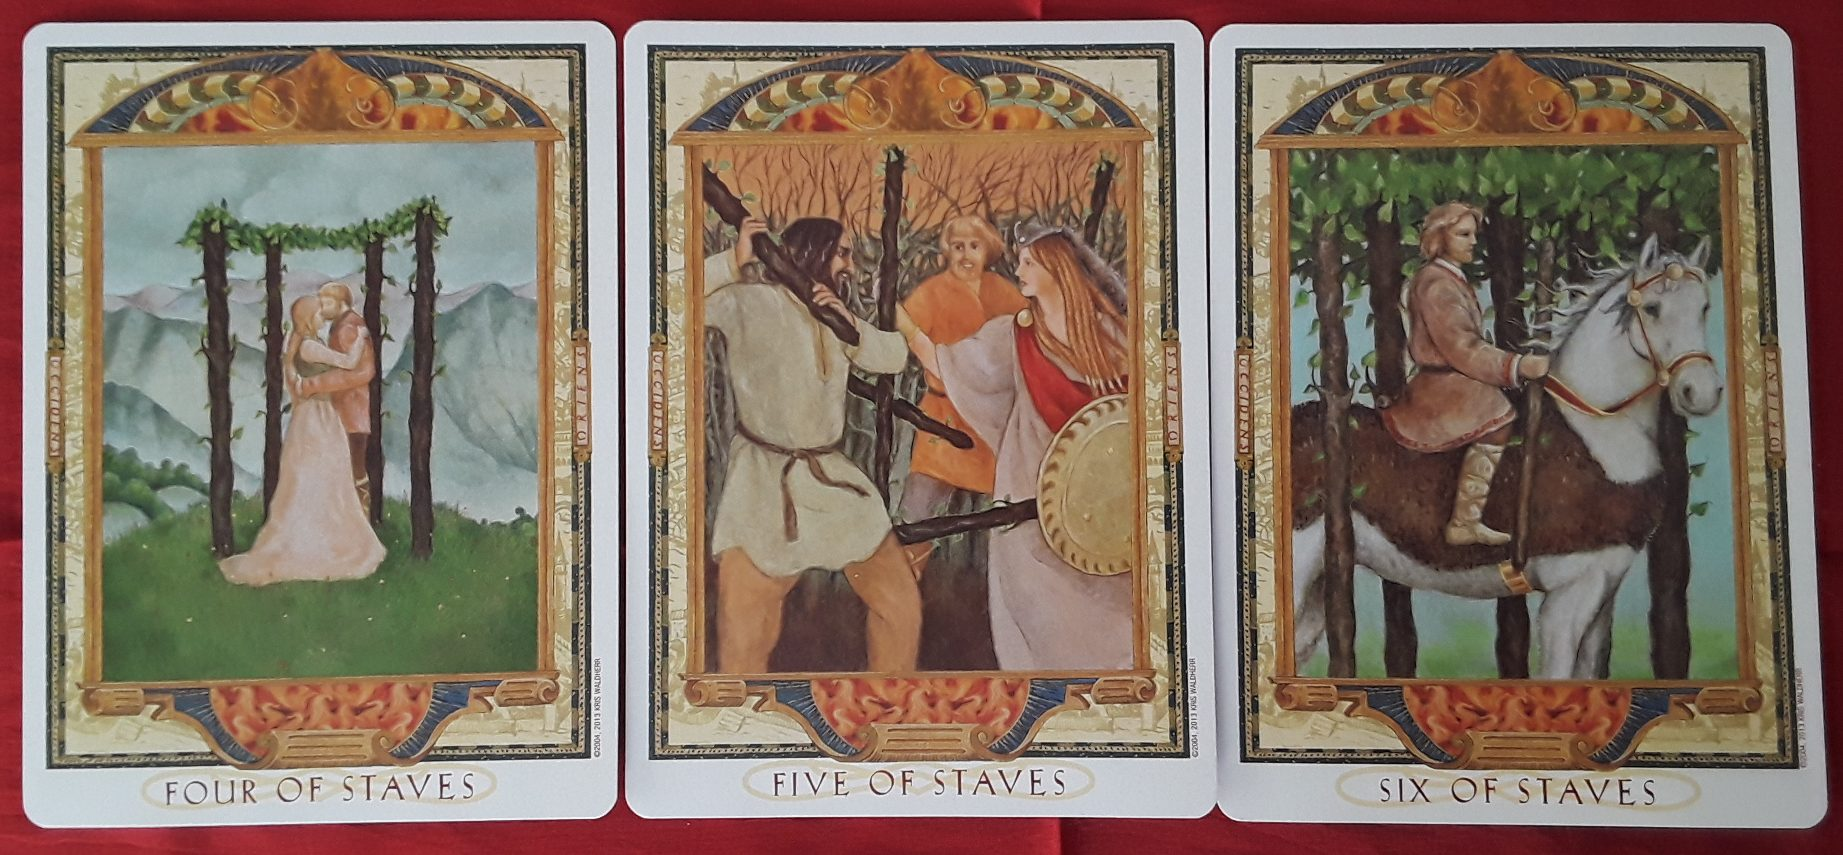 Tarot Suit of Wands in Love Readings